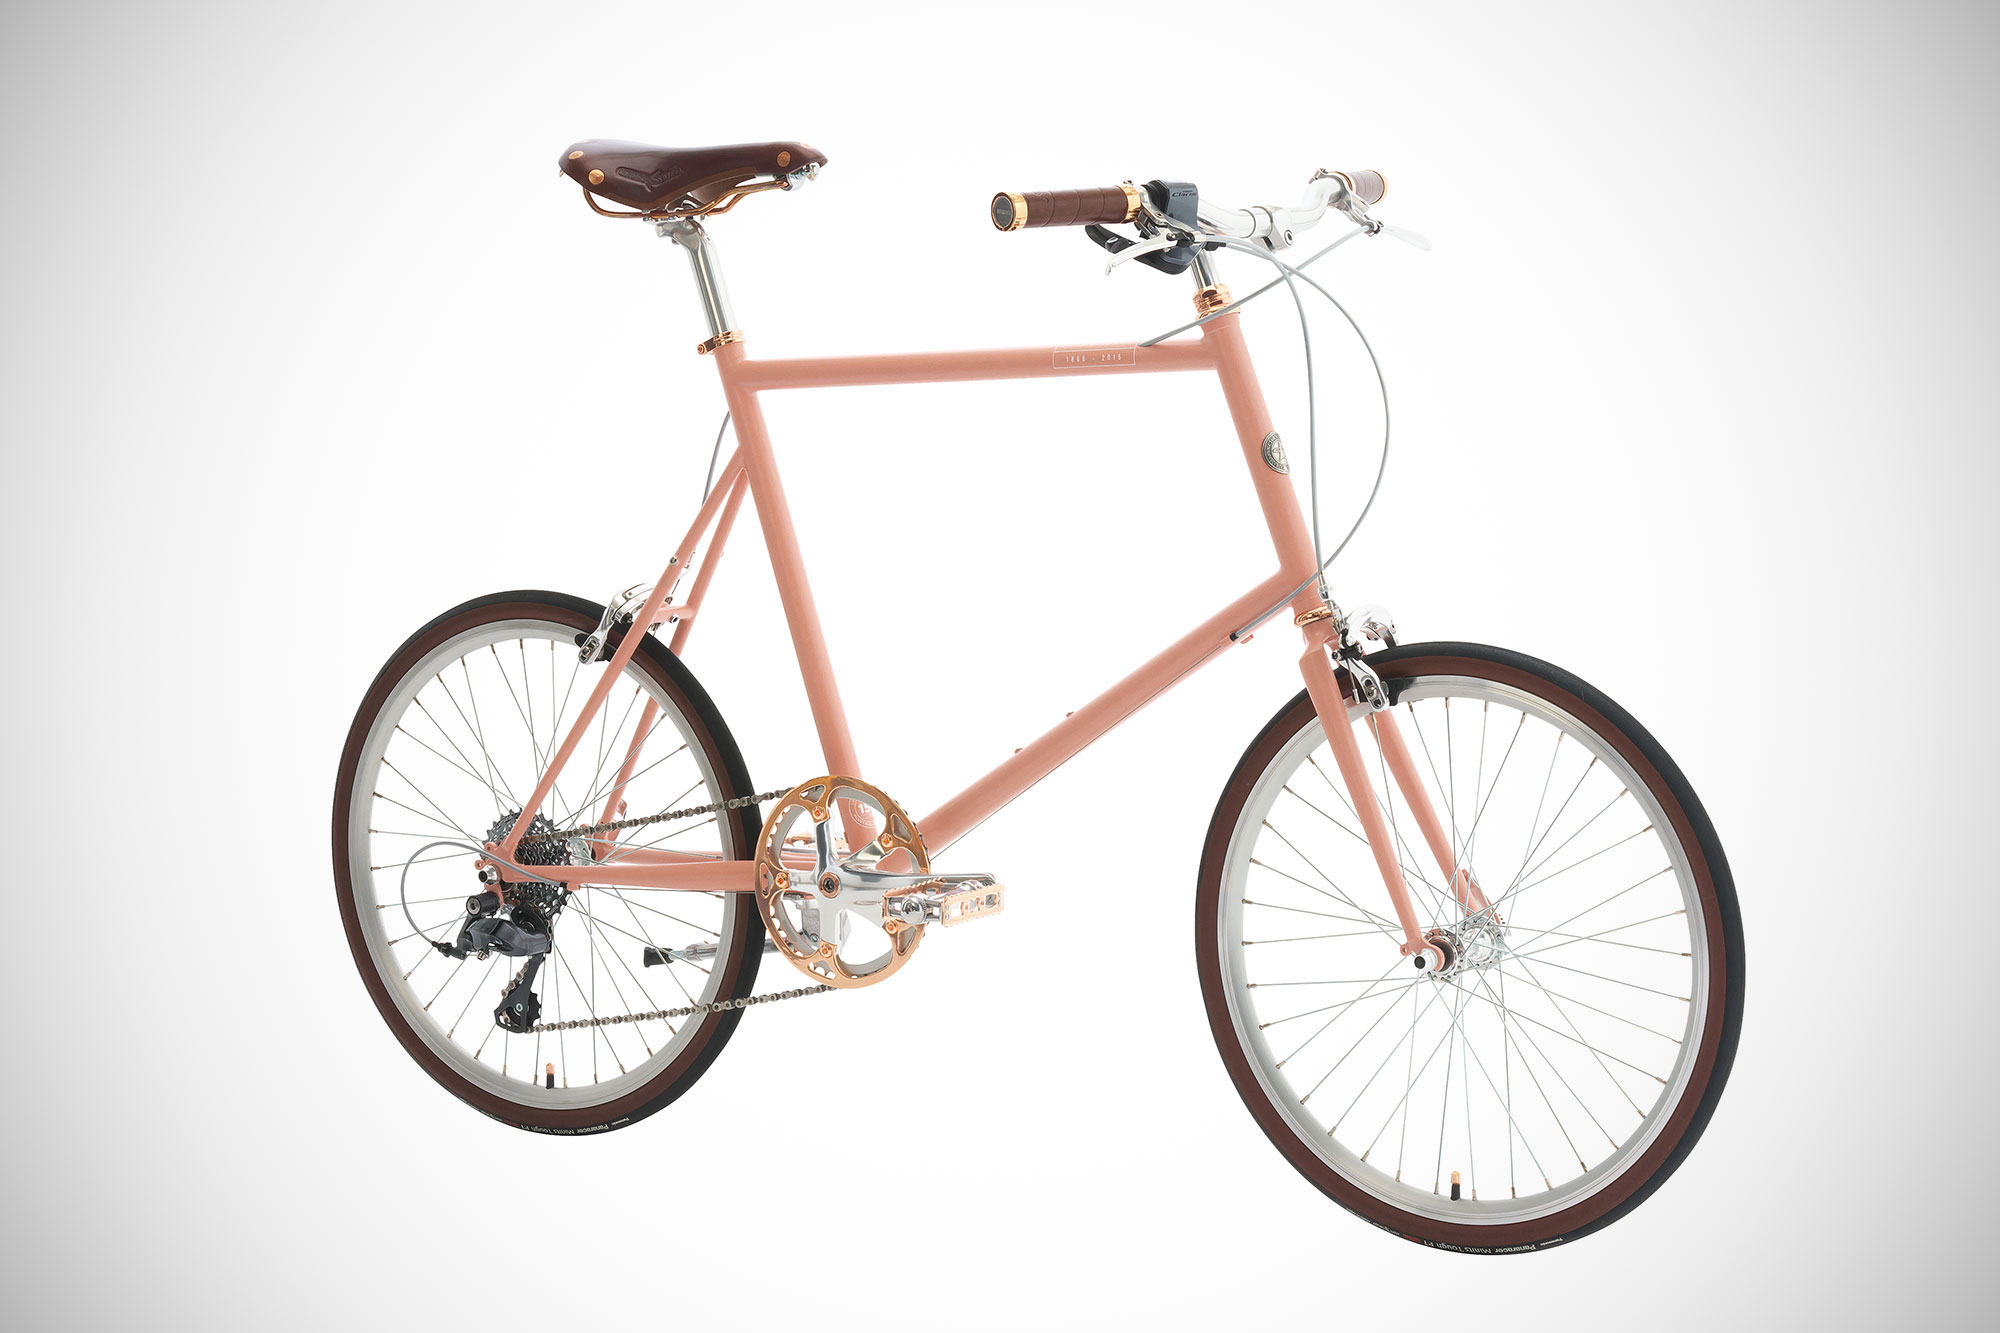 Limited Edition Mini Velo Bike By Tokyobike